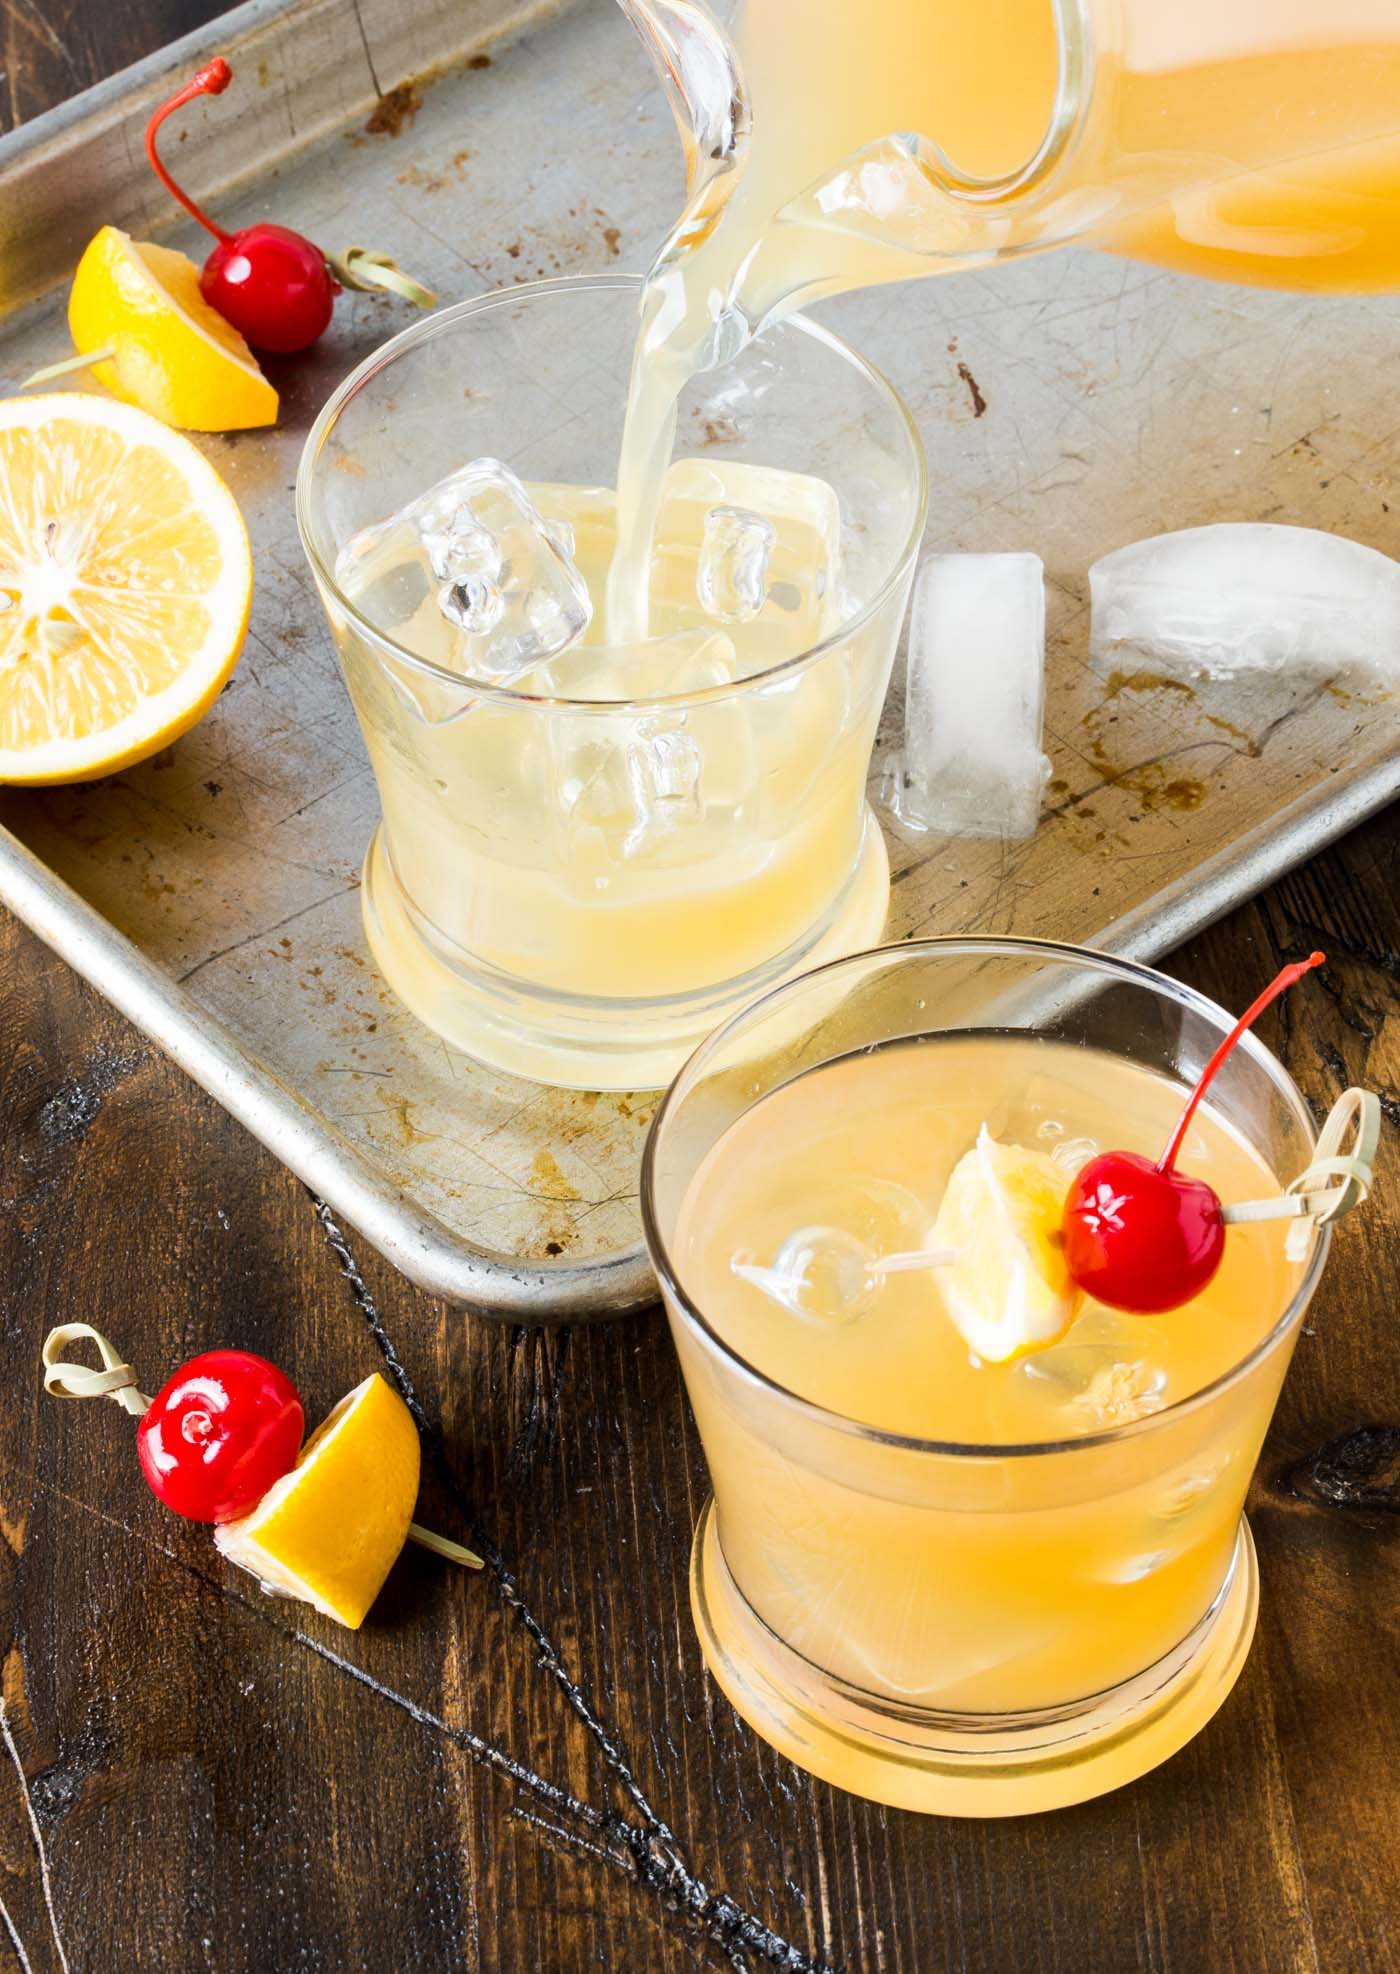 Whip up a pitcher of these Meyer Lemon Whiskey Sours for your next party, a fresh and tasty batch cocktail recipe that can be made ahead of time!